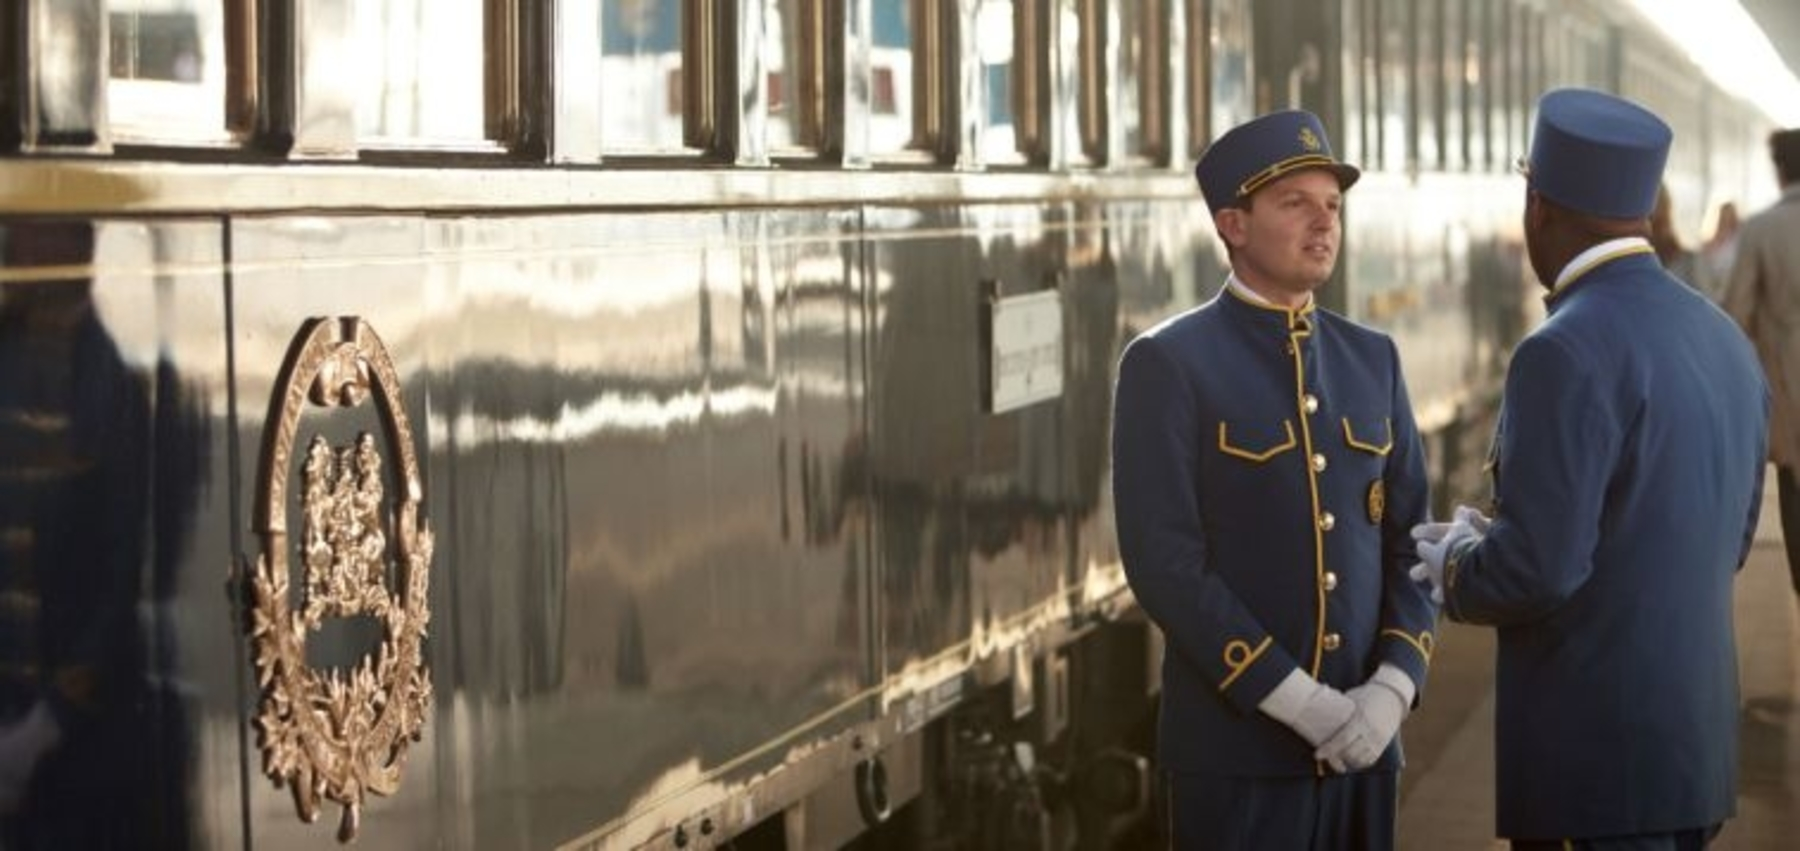 Experience luxury on the Orient Express